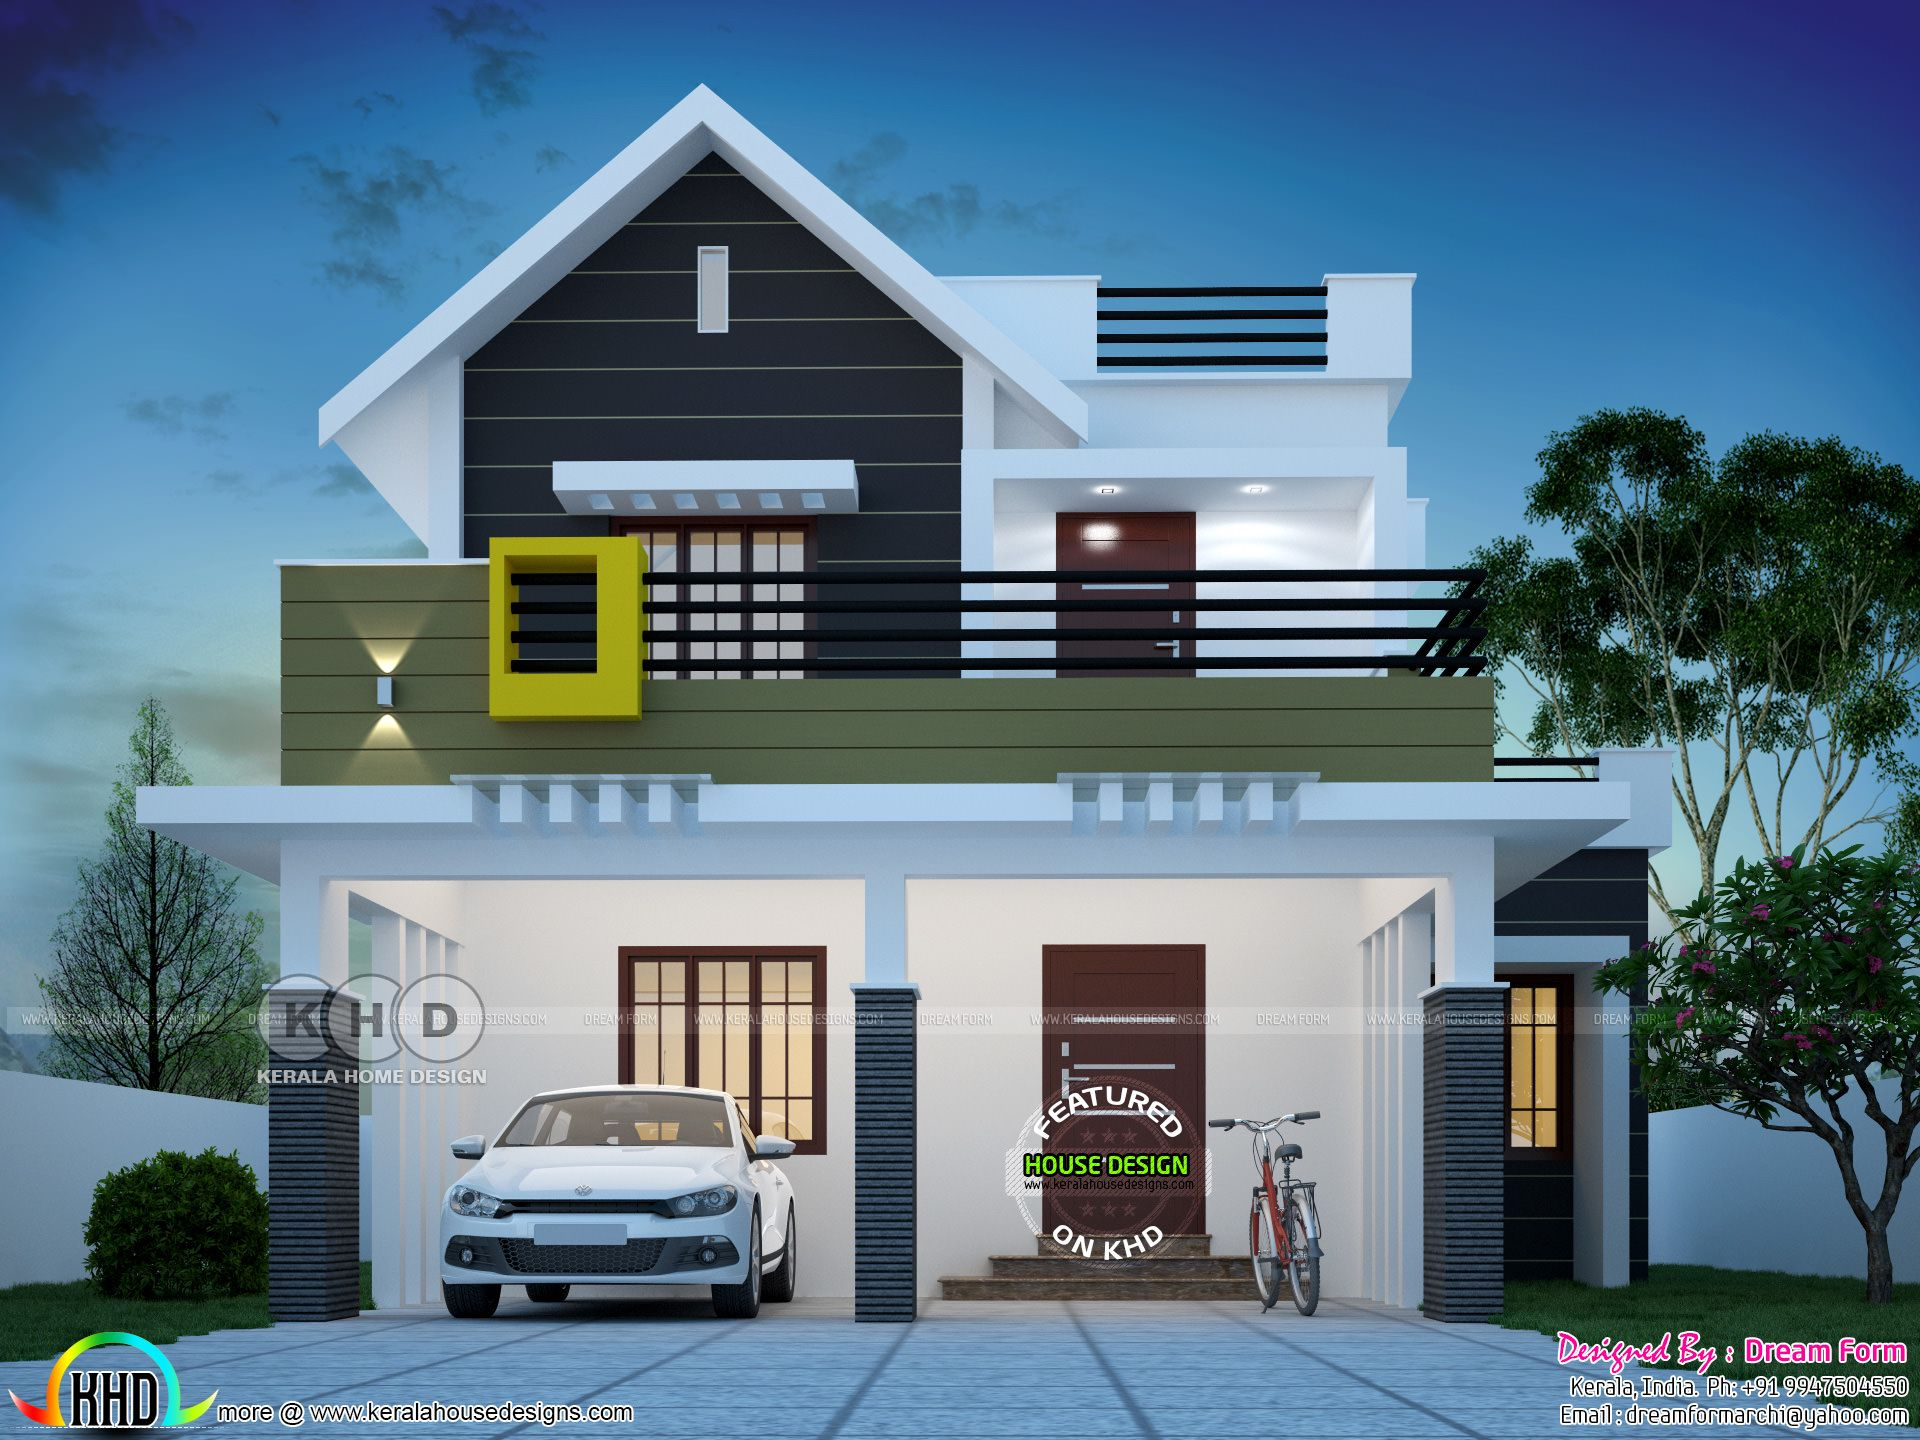 1564 Square Feet 4 Bedroom Cute Kerala Home Design Kerala House Design Bungalow House Design House Layouts